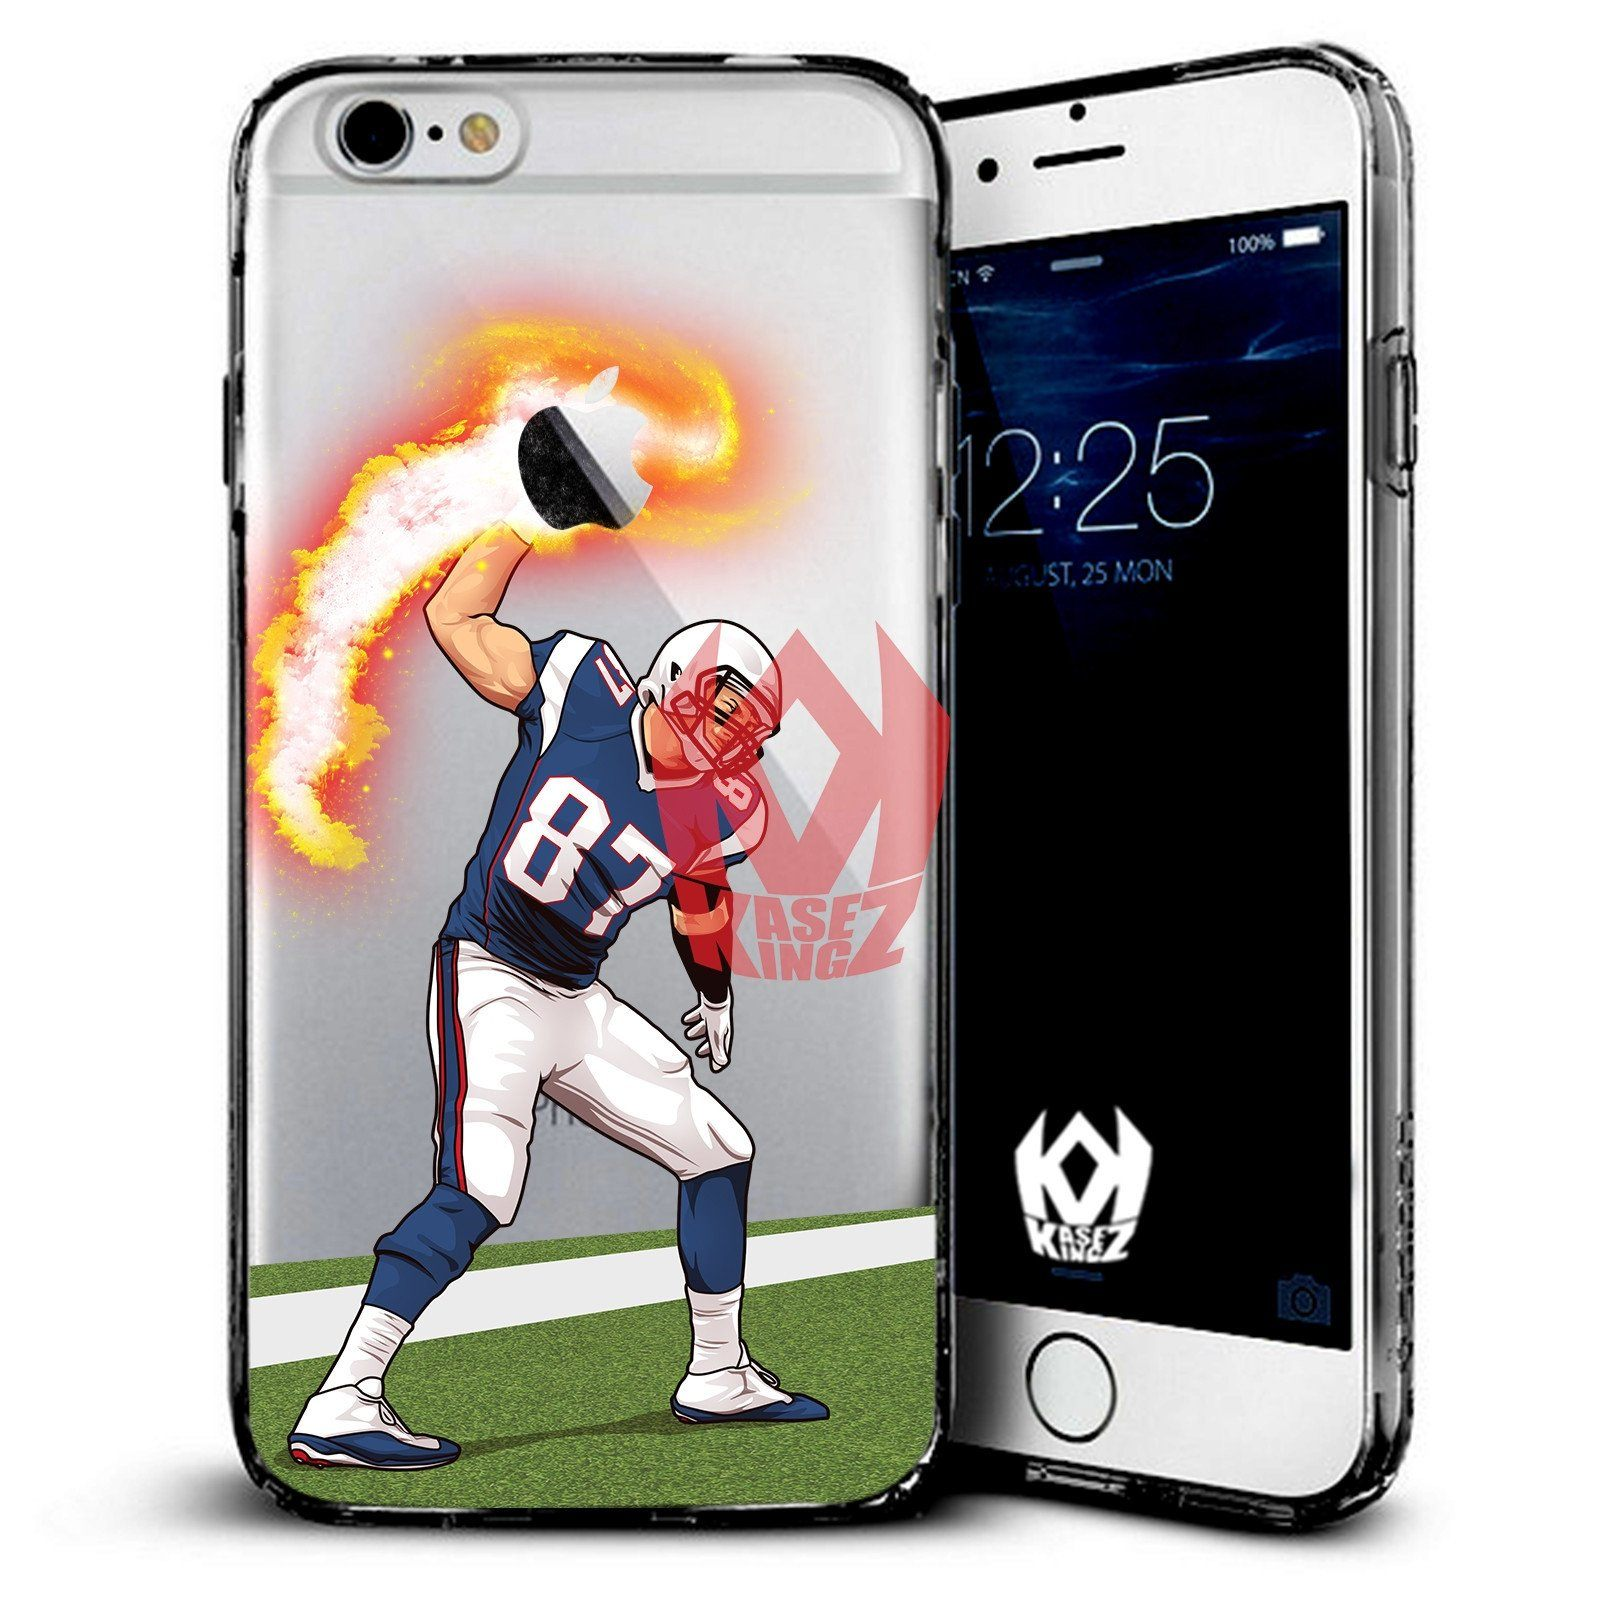 GRONK ON FIRE iPhone Case